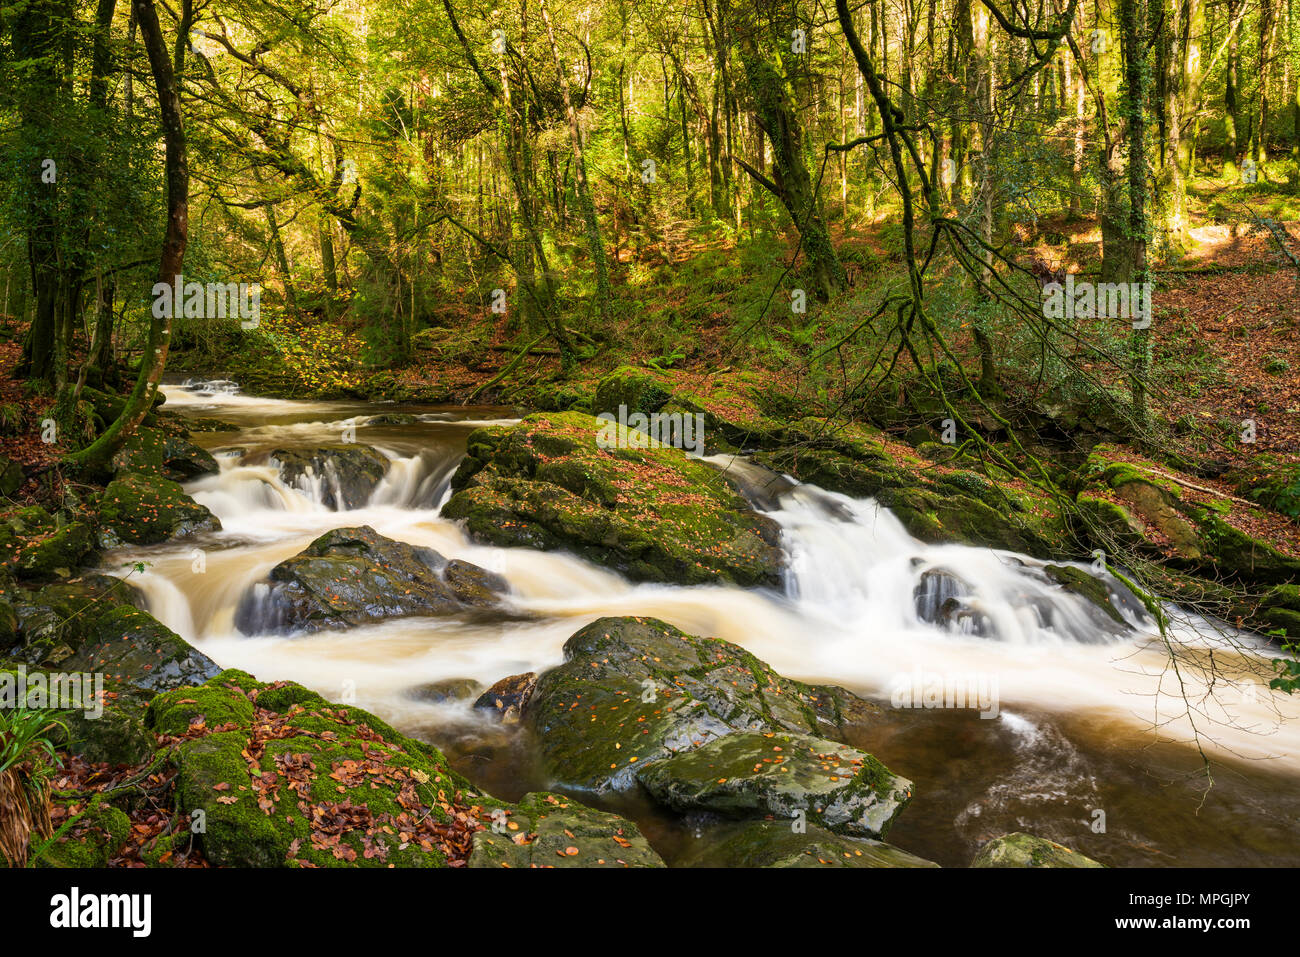 The River Erme flowing though autumn woodland on the edge of the Dartmoor National Park at Ivybridge, Devon, England. - Stock Image